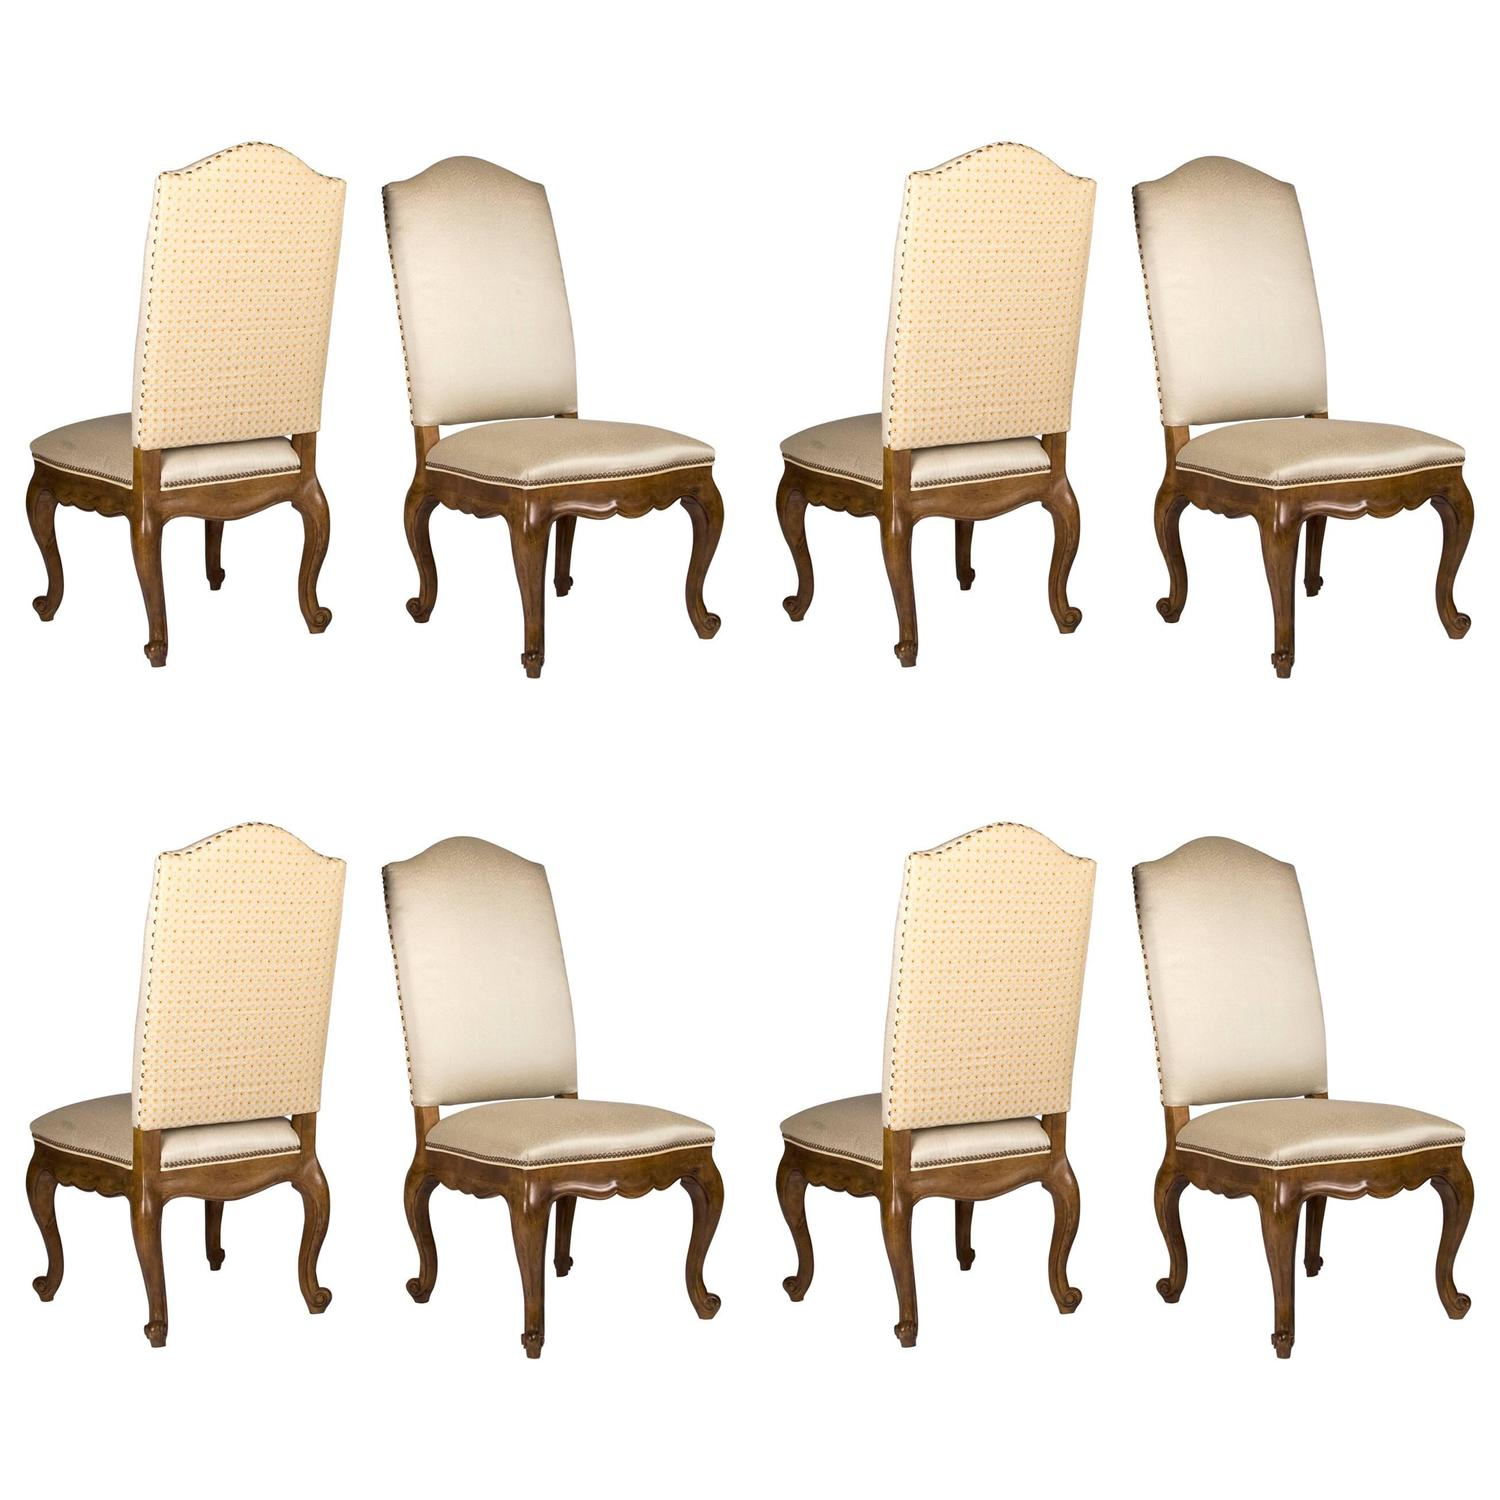 Eight Barcelona Style Dining Side Chairs For Sale at 1stdibs